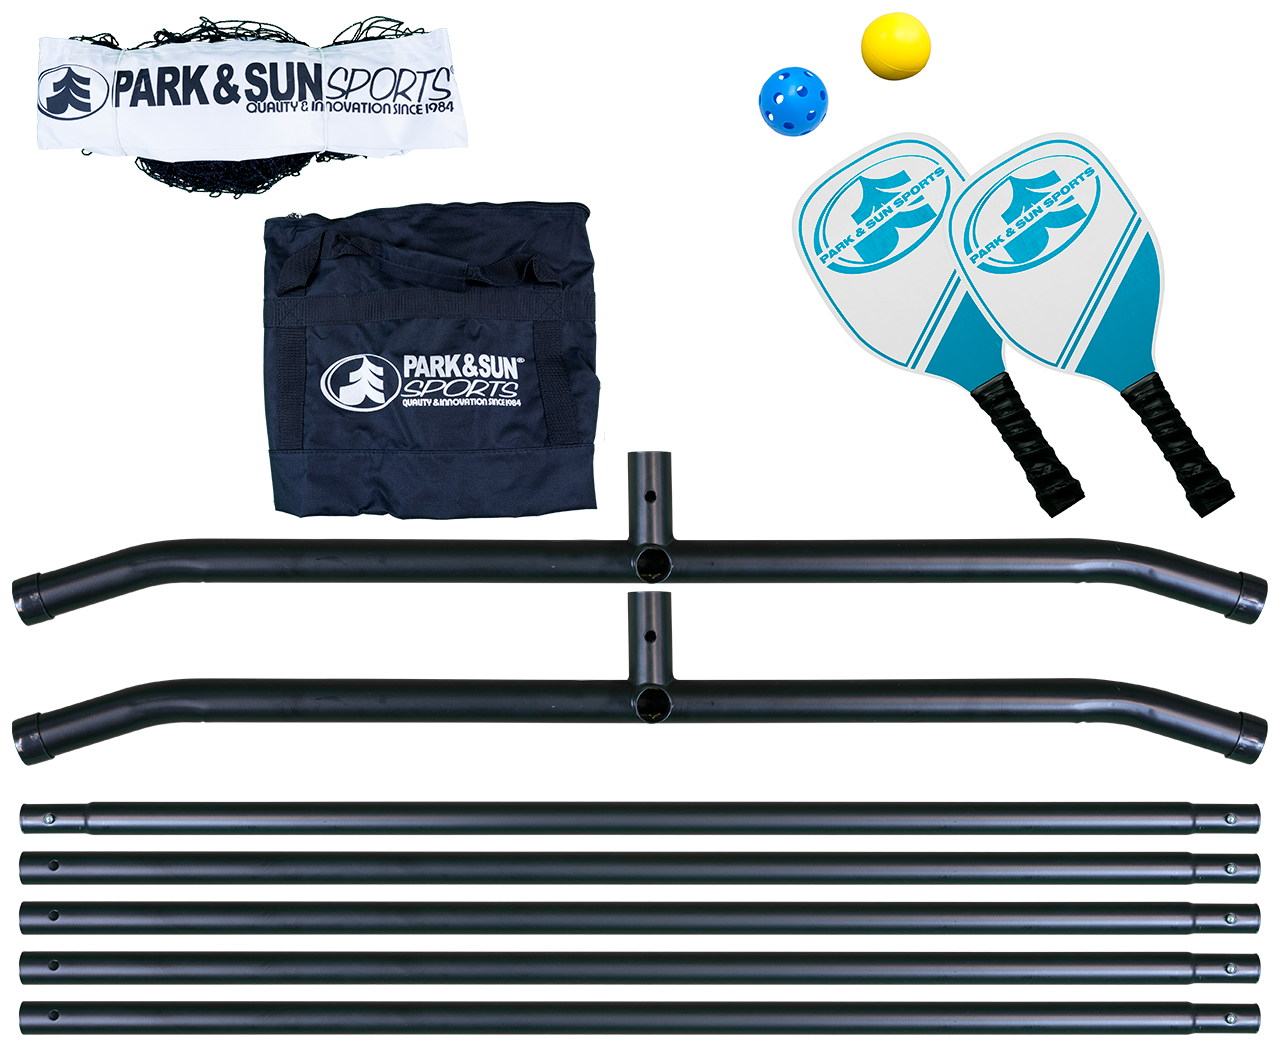 Park and Sports Pickleball Accessories Layout